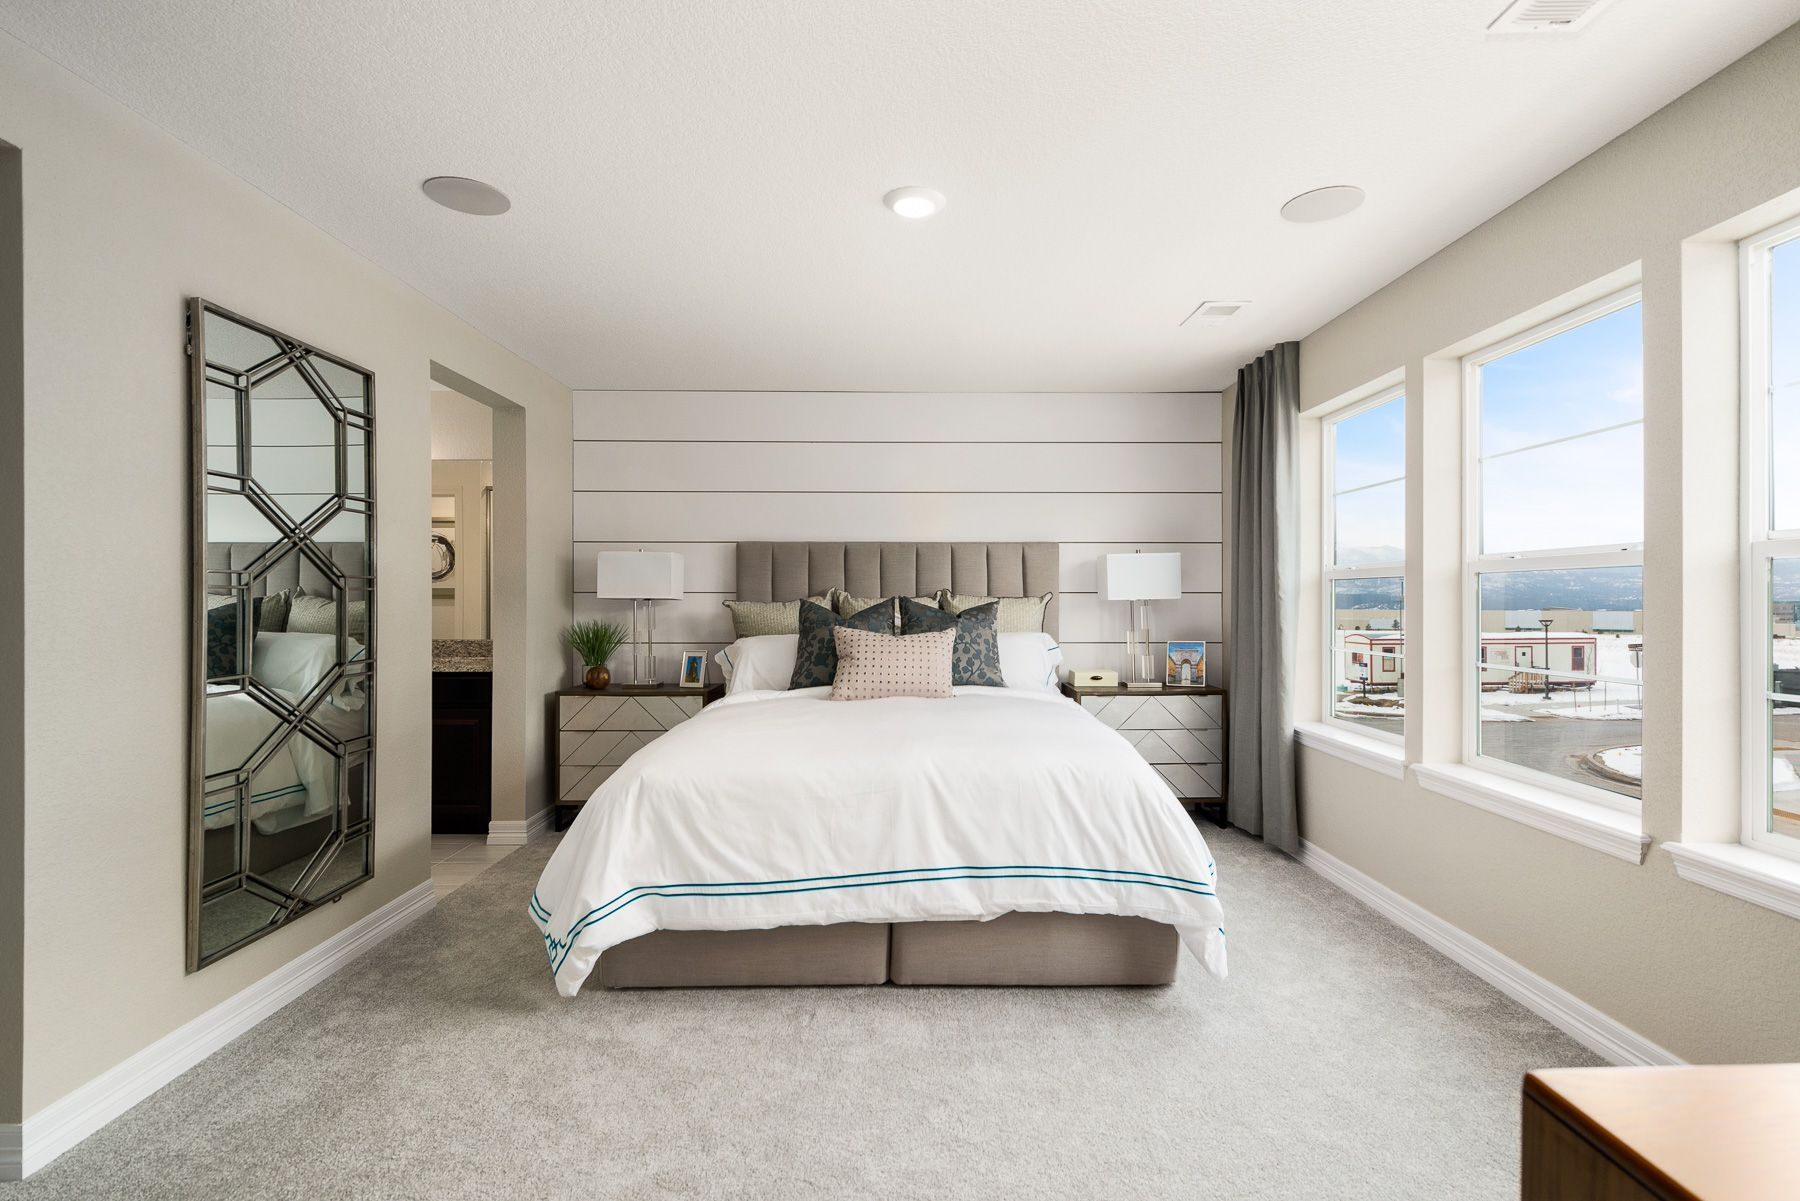 Bedroom featured in the Kaeleigh By Lokal Homes in Colorado Springs, CO